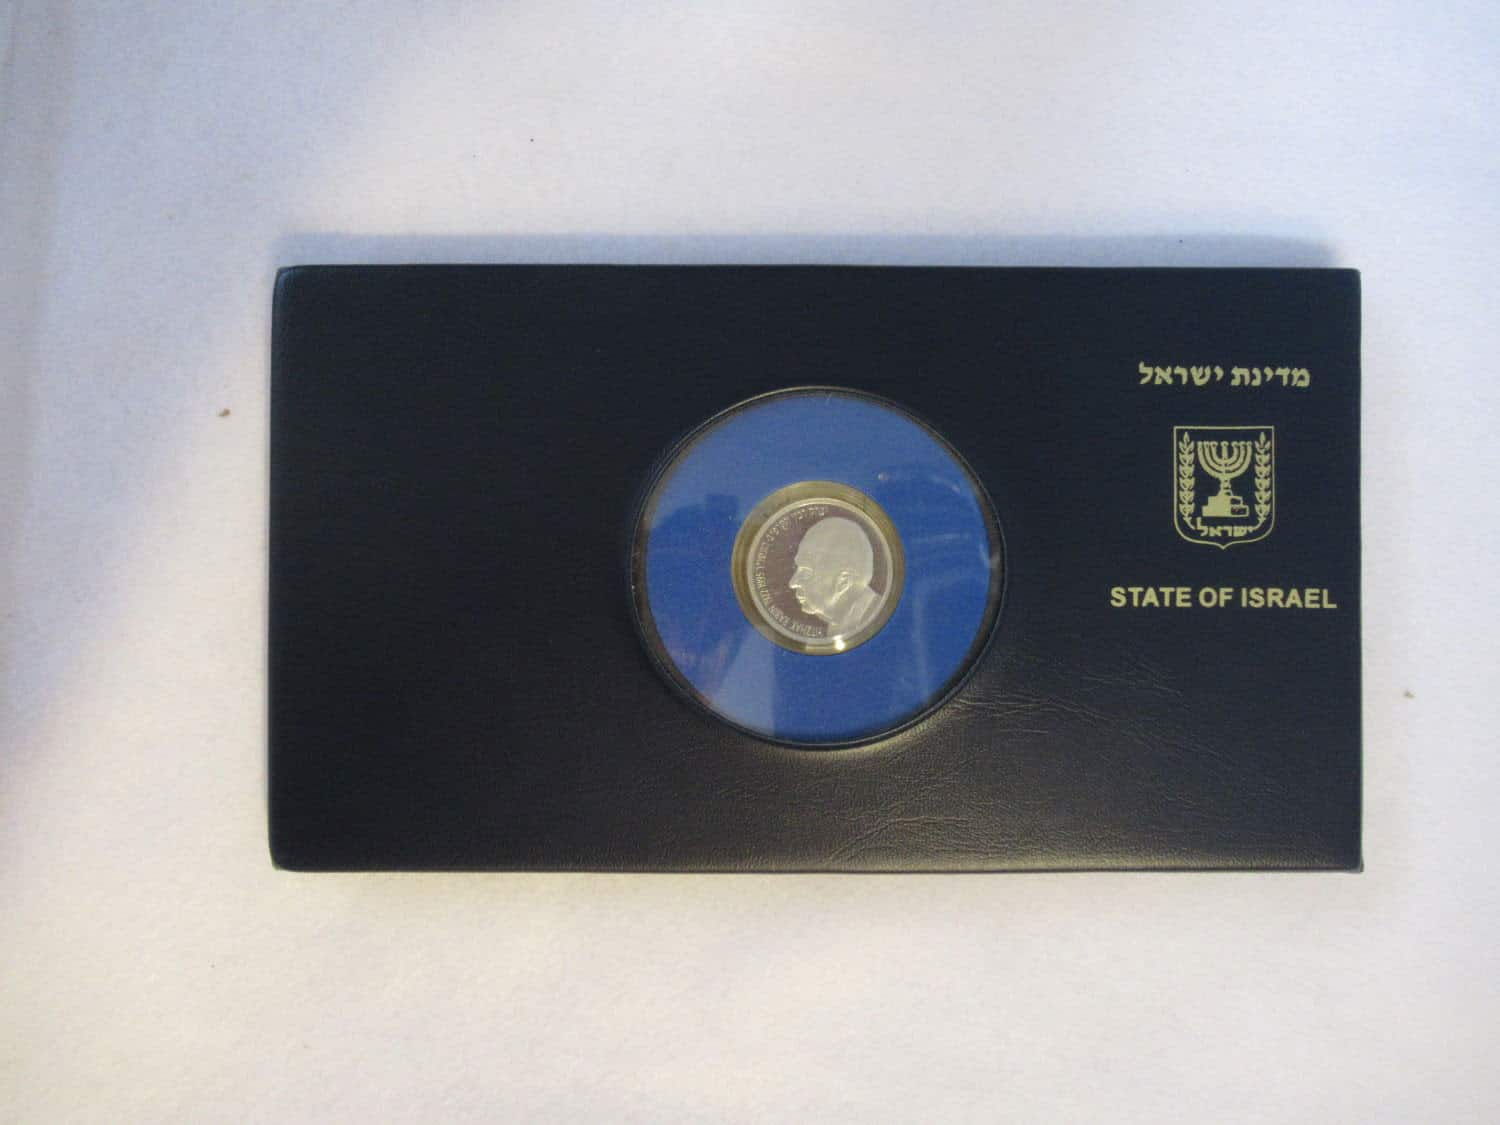 Online auction 8 - Yitzchak Rabin collection